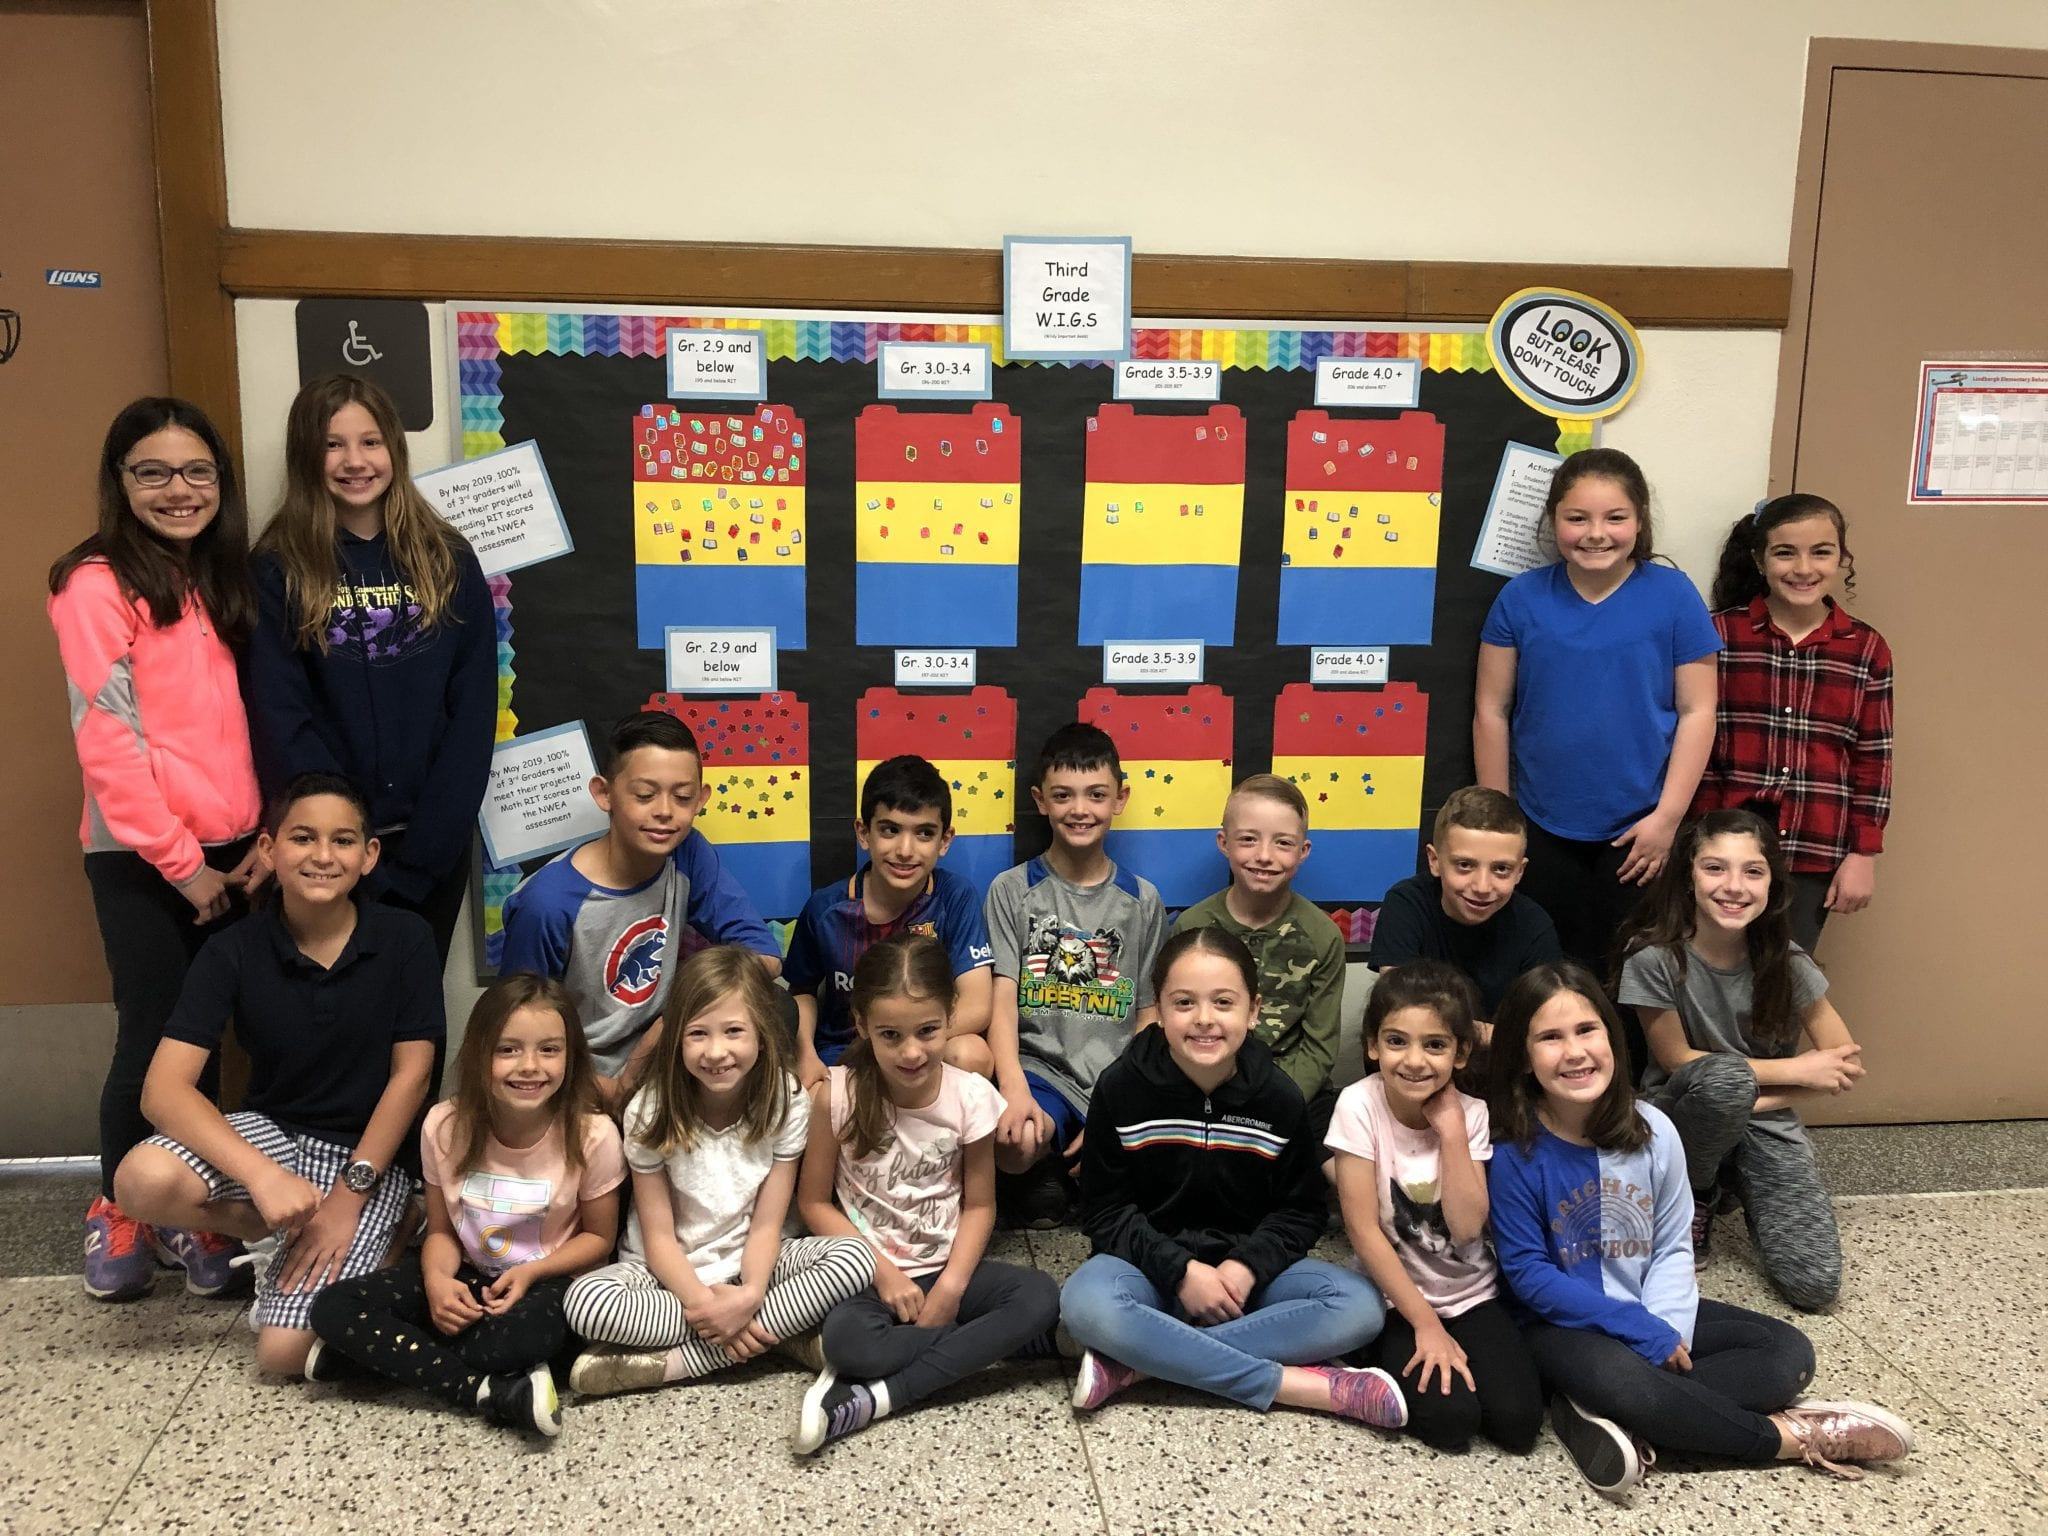 Students pose around a colorful bulletin board